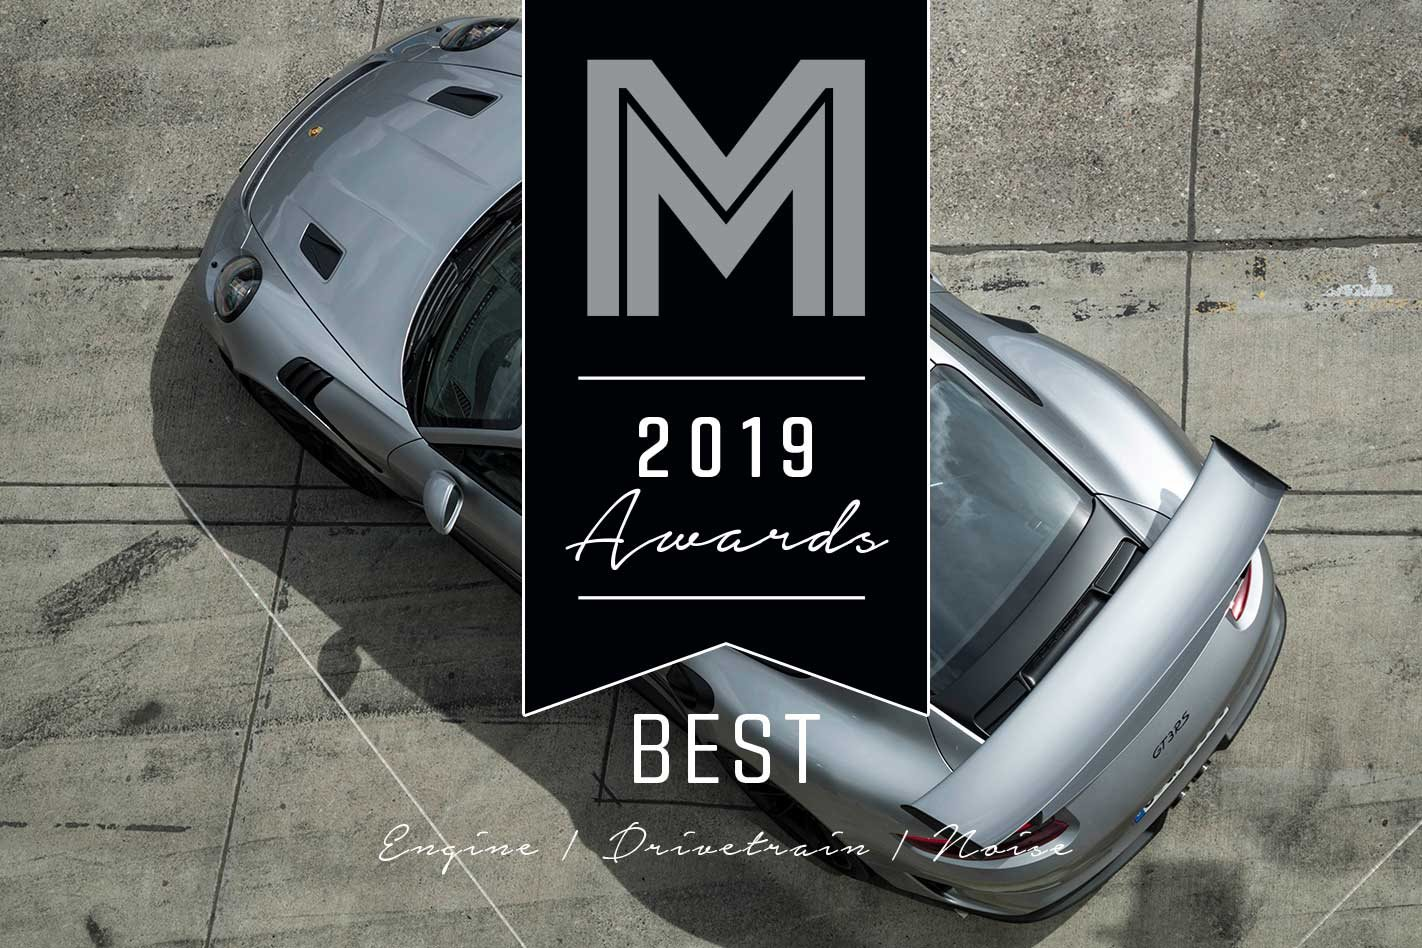 2019 MOTOR Awards: Best Engine, Best Drivetrain, and Best Noise